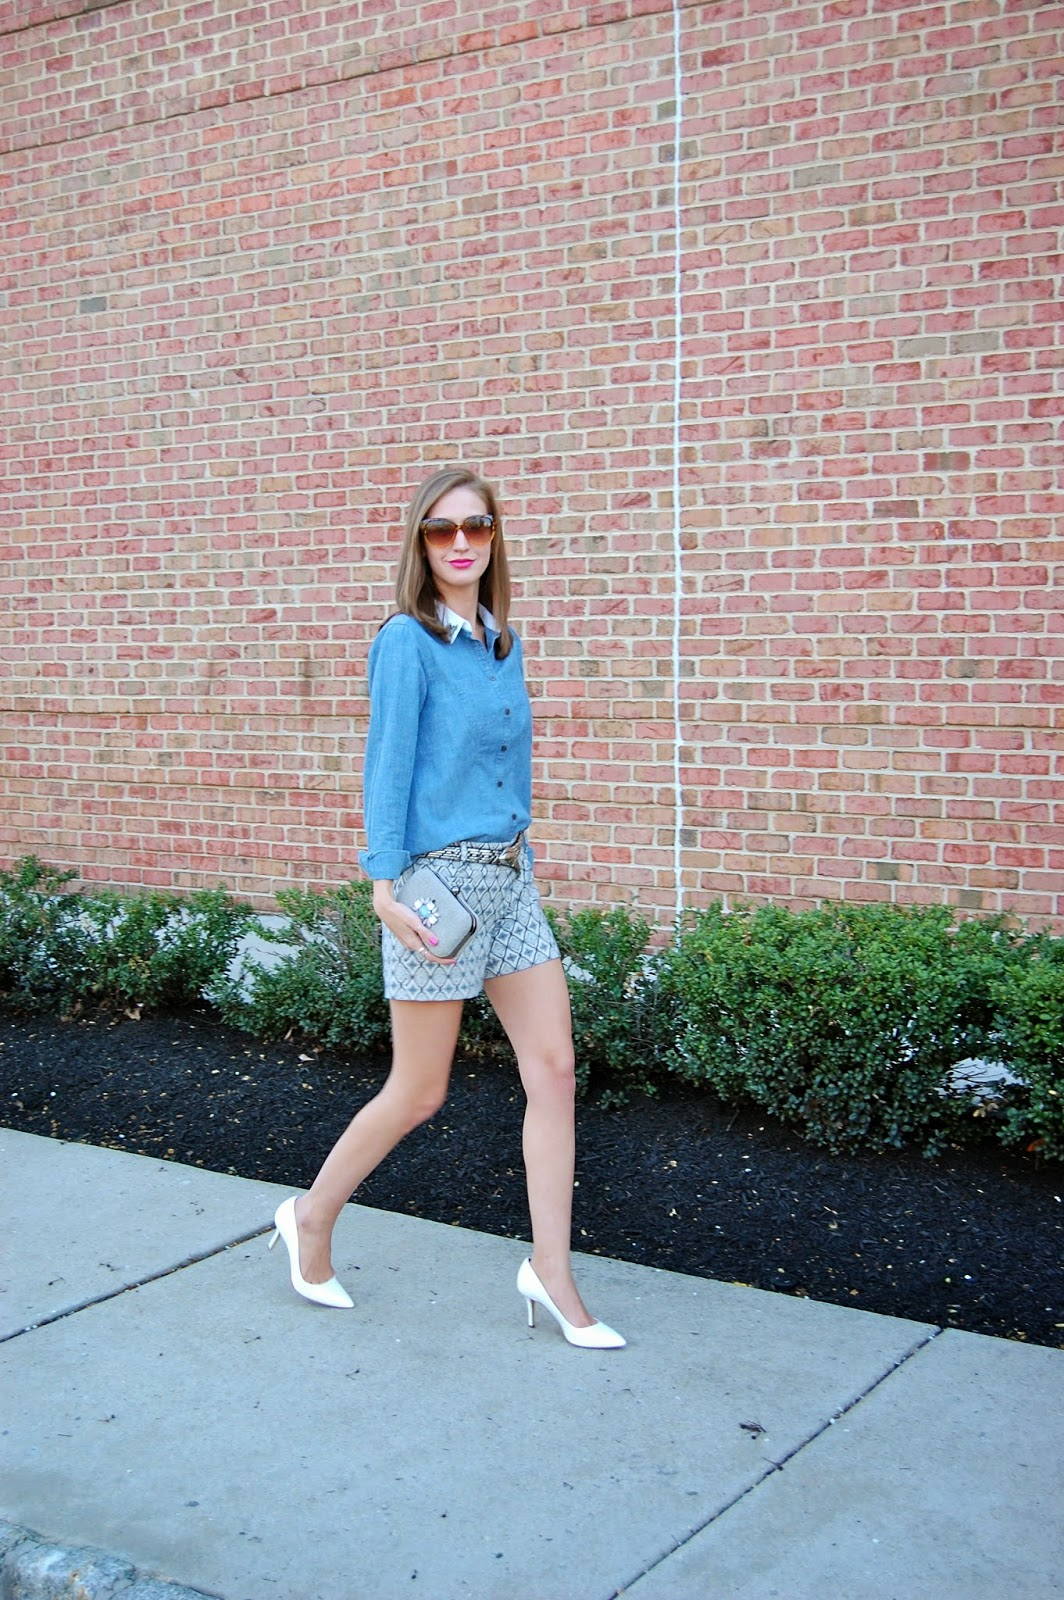 Wearing loft embellished chambray shirt, tile jacquard shorts, white bcbg white heels